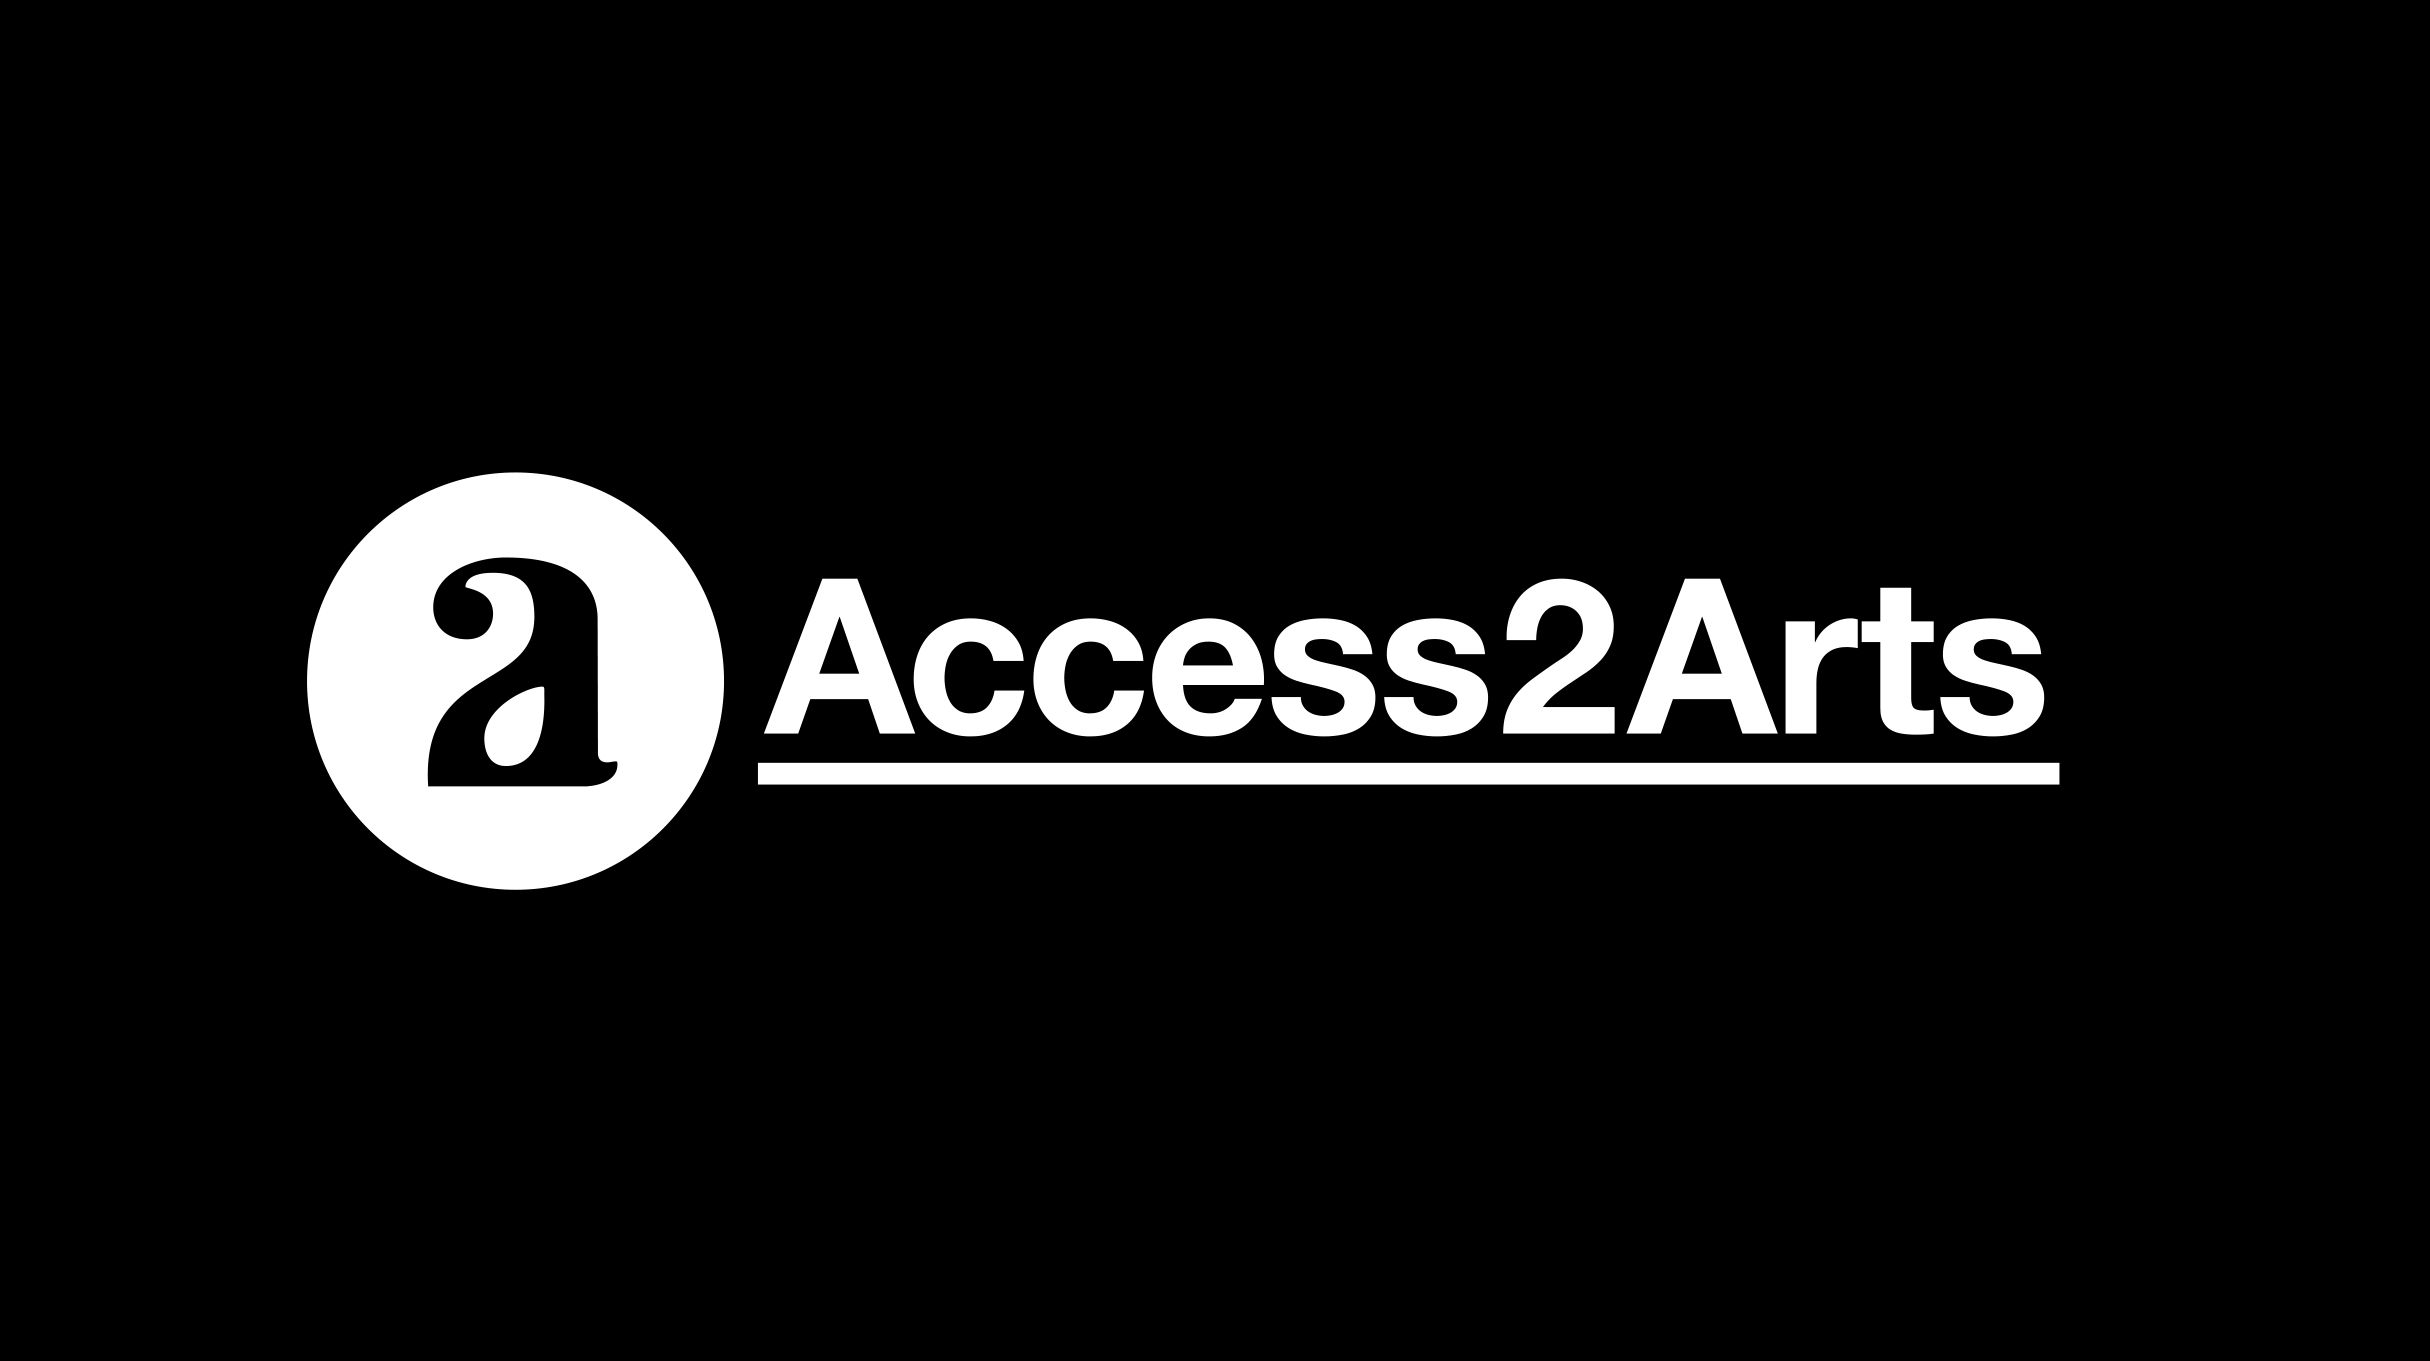 Access2Arts - logo